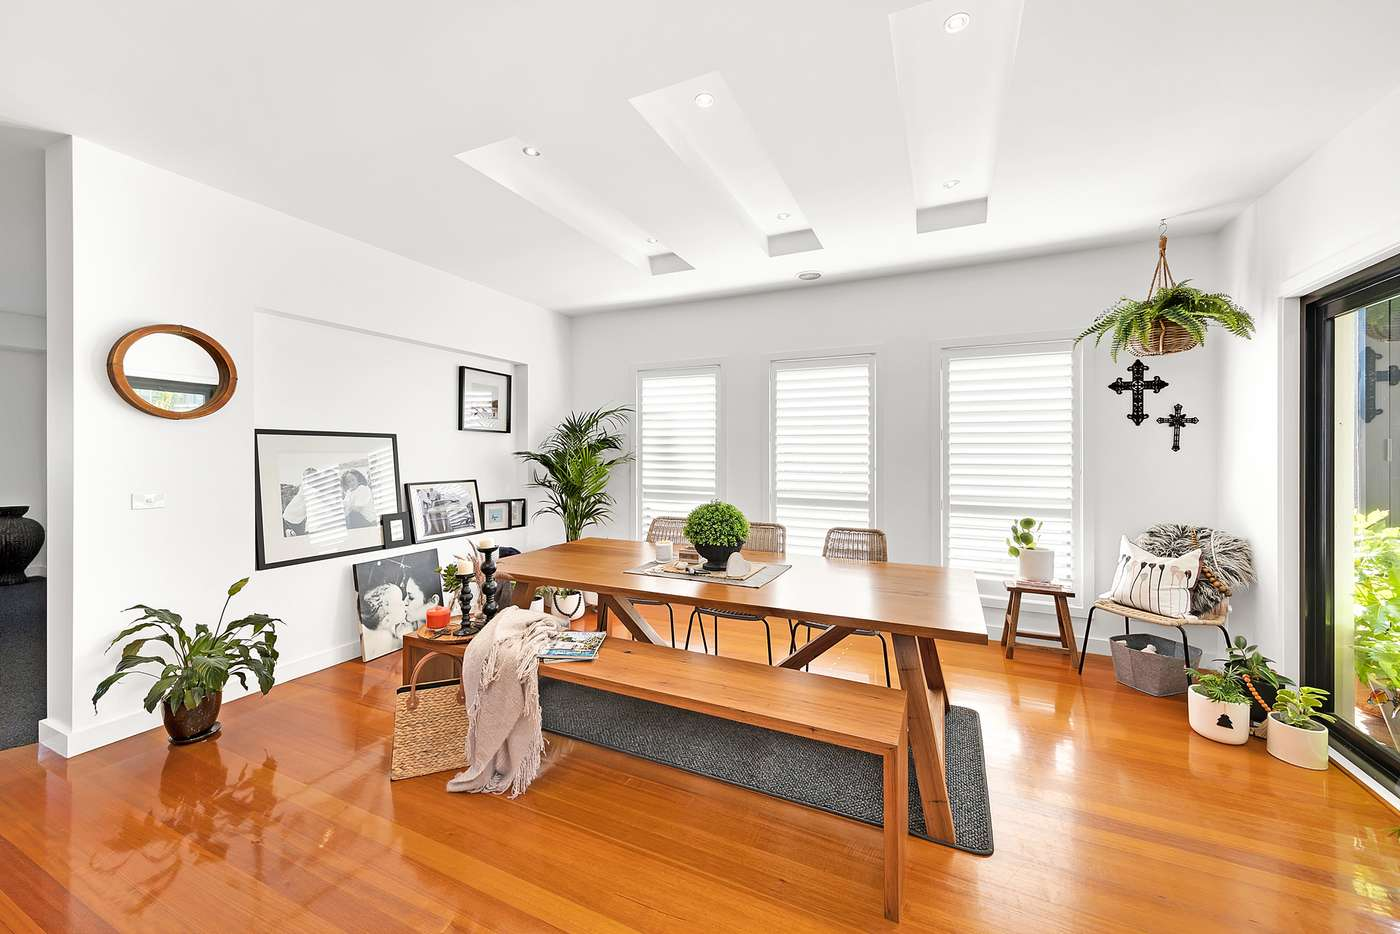 Fifth view of Homely house listing, 103 High Street, Koroit VIC 3282